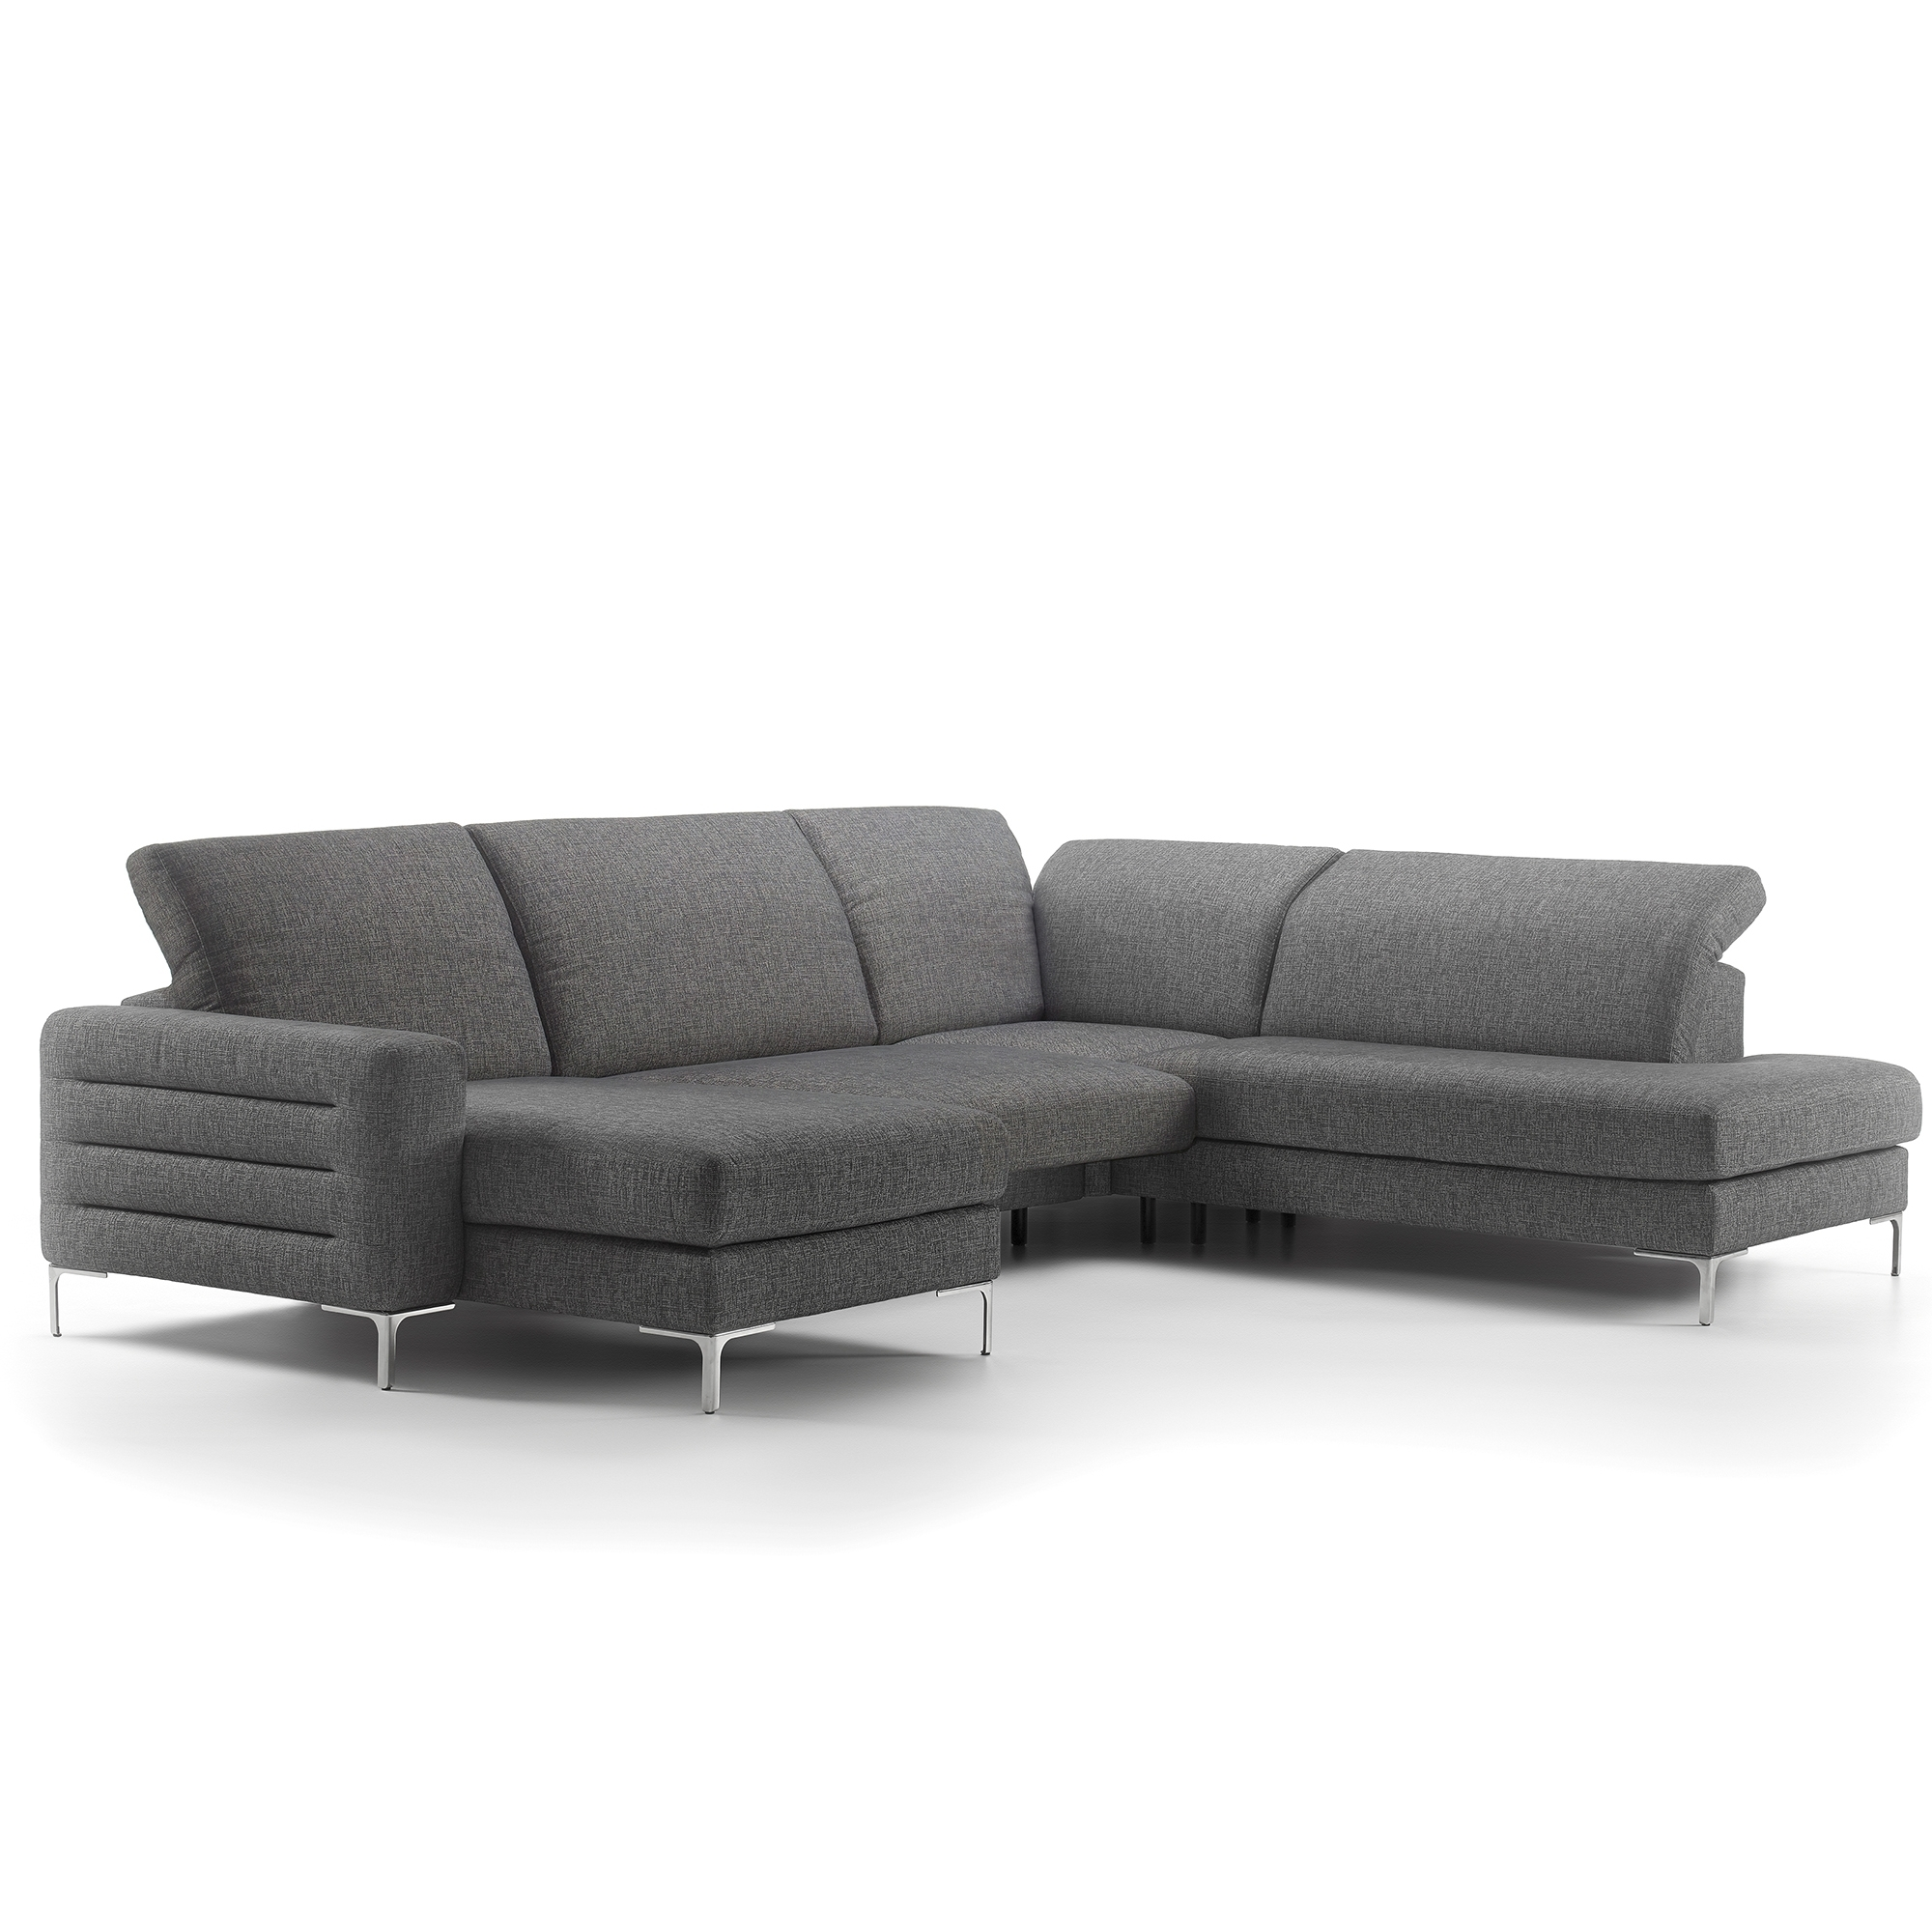 Leather Sofas Living Cookes Furniture